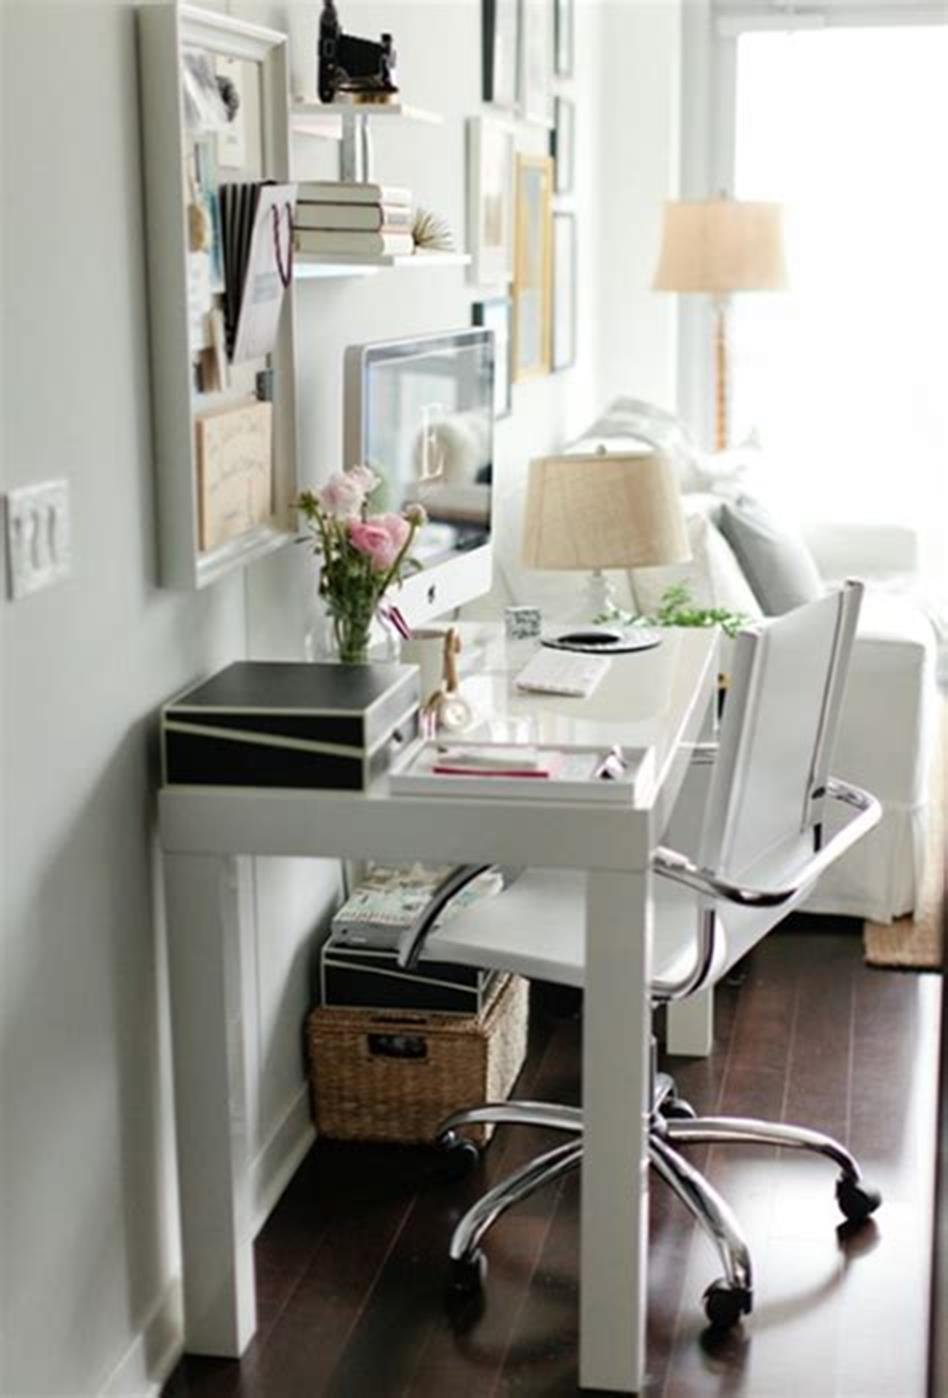 50 Best Small Space Office Decorating Ideas On a Budget 2019 63